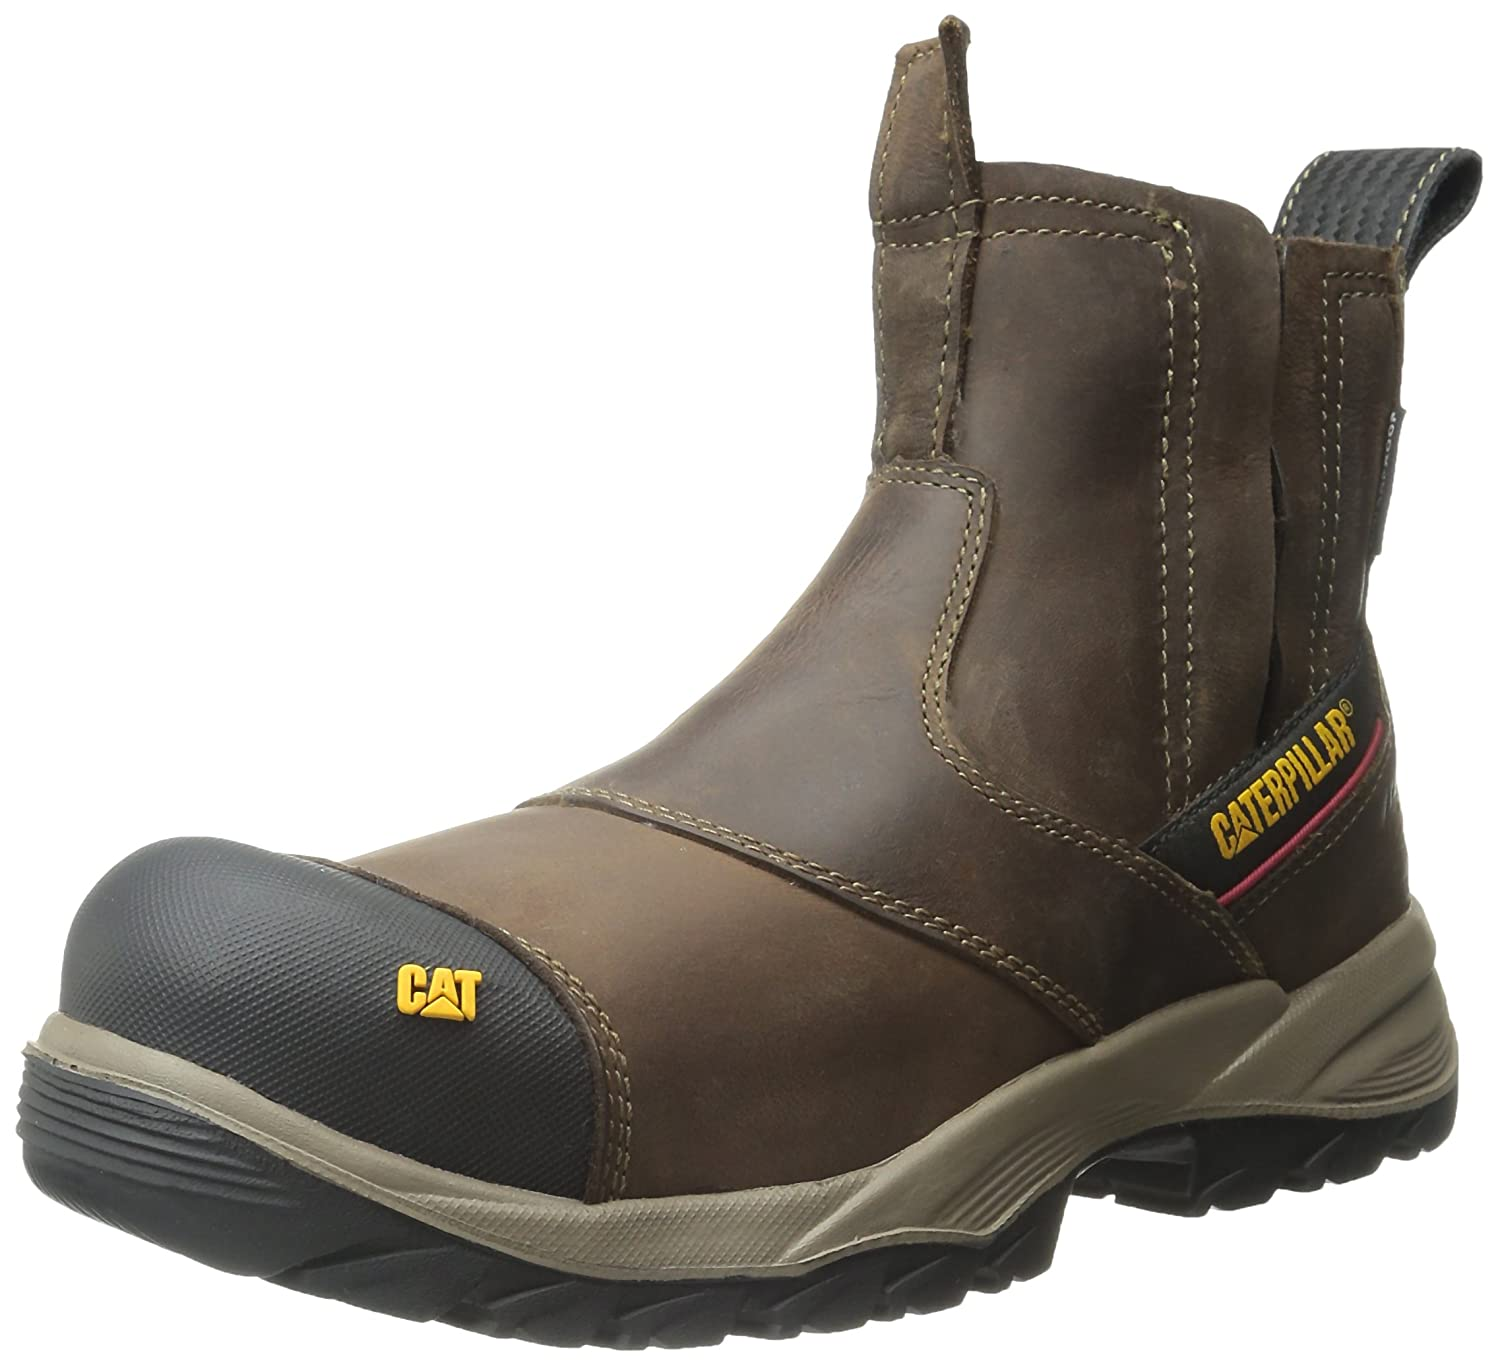 Caterpillar Men 's Jointer防水Comp Toe Work Boot B00U1TM6UW 8.5 W US Men|クレイ クレイ 8.5 W US Men